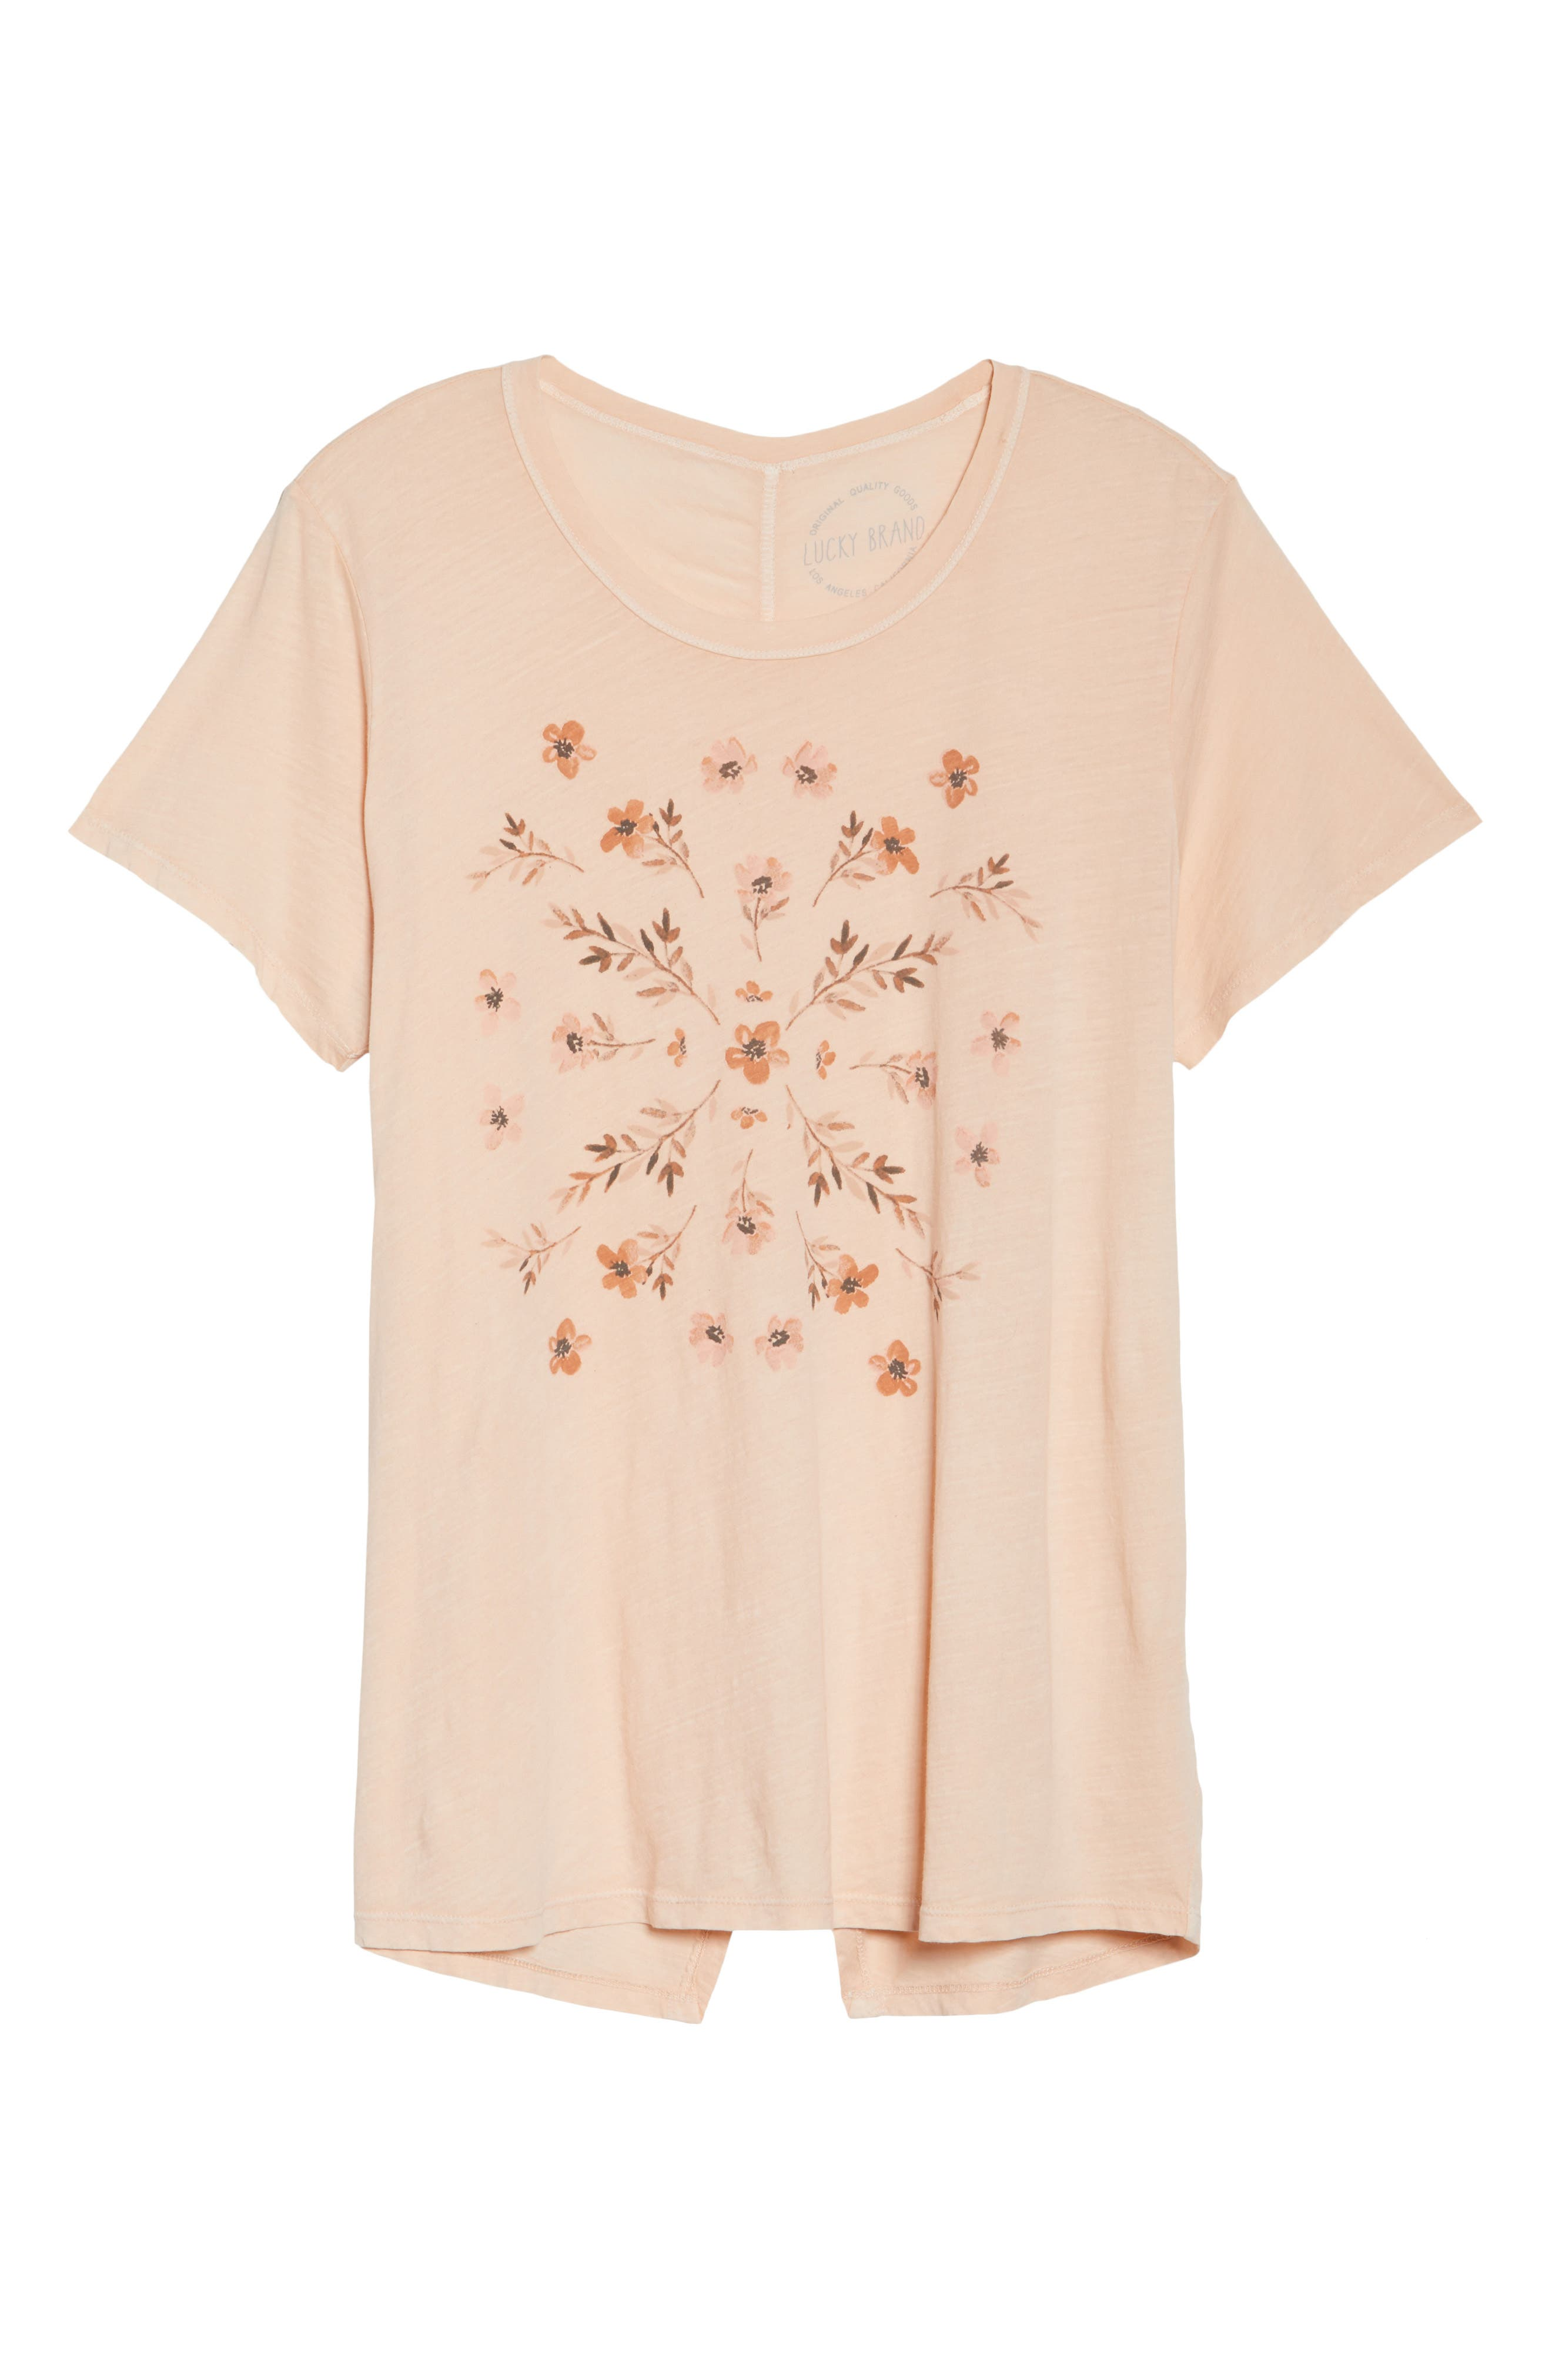 Stamped Flowers Tee,                             Alternate thumbnail 6, color,